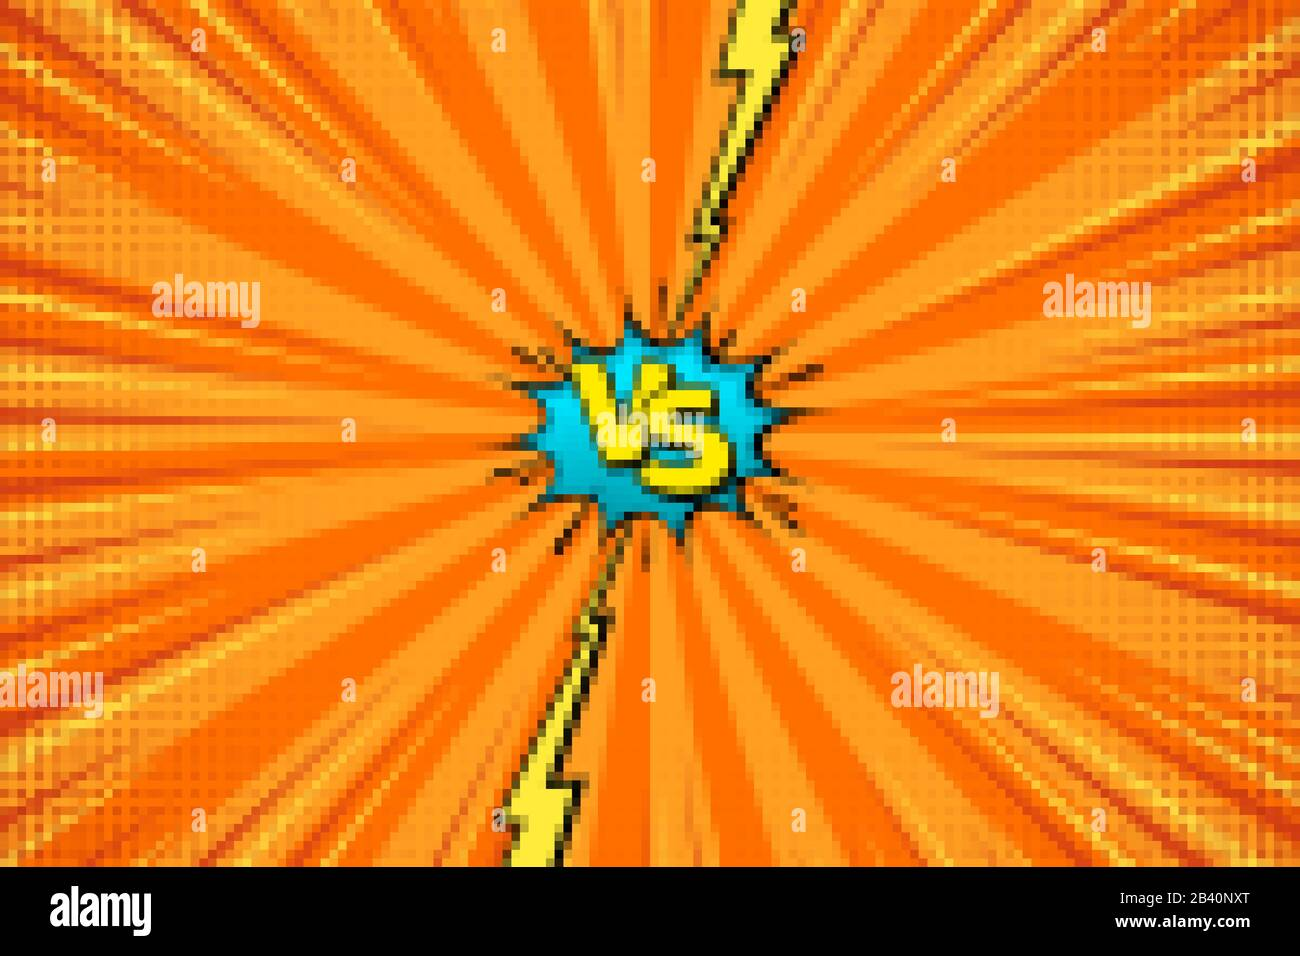 30+ Fighting Cartoon Background Vs Background JPG